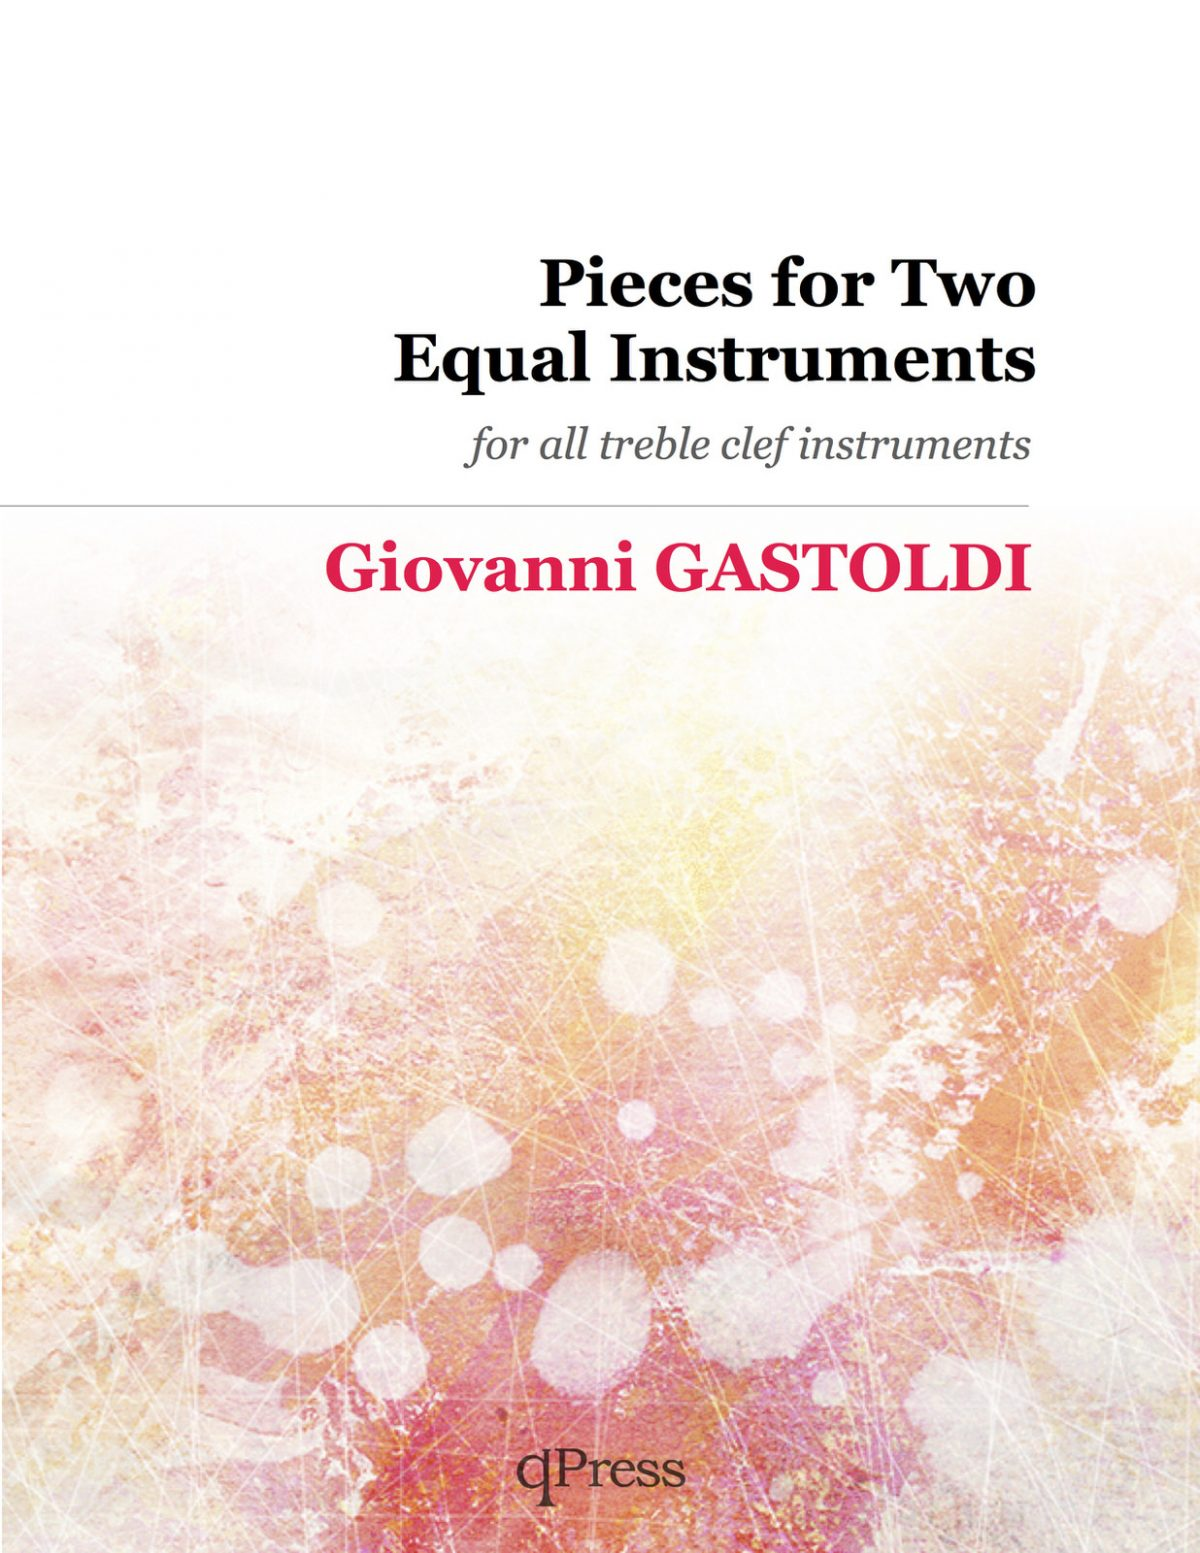 gastoldi-pieces-for-two-equal-instruments